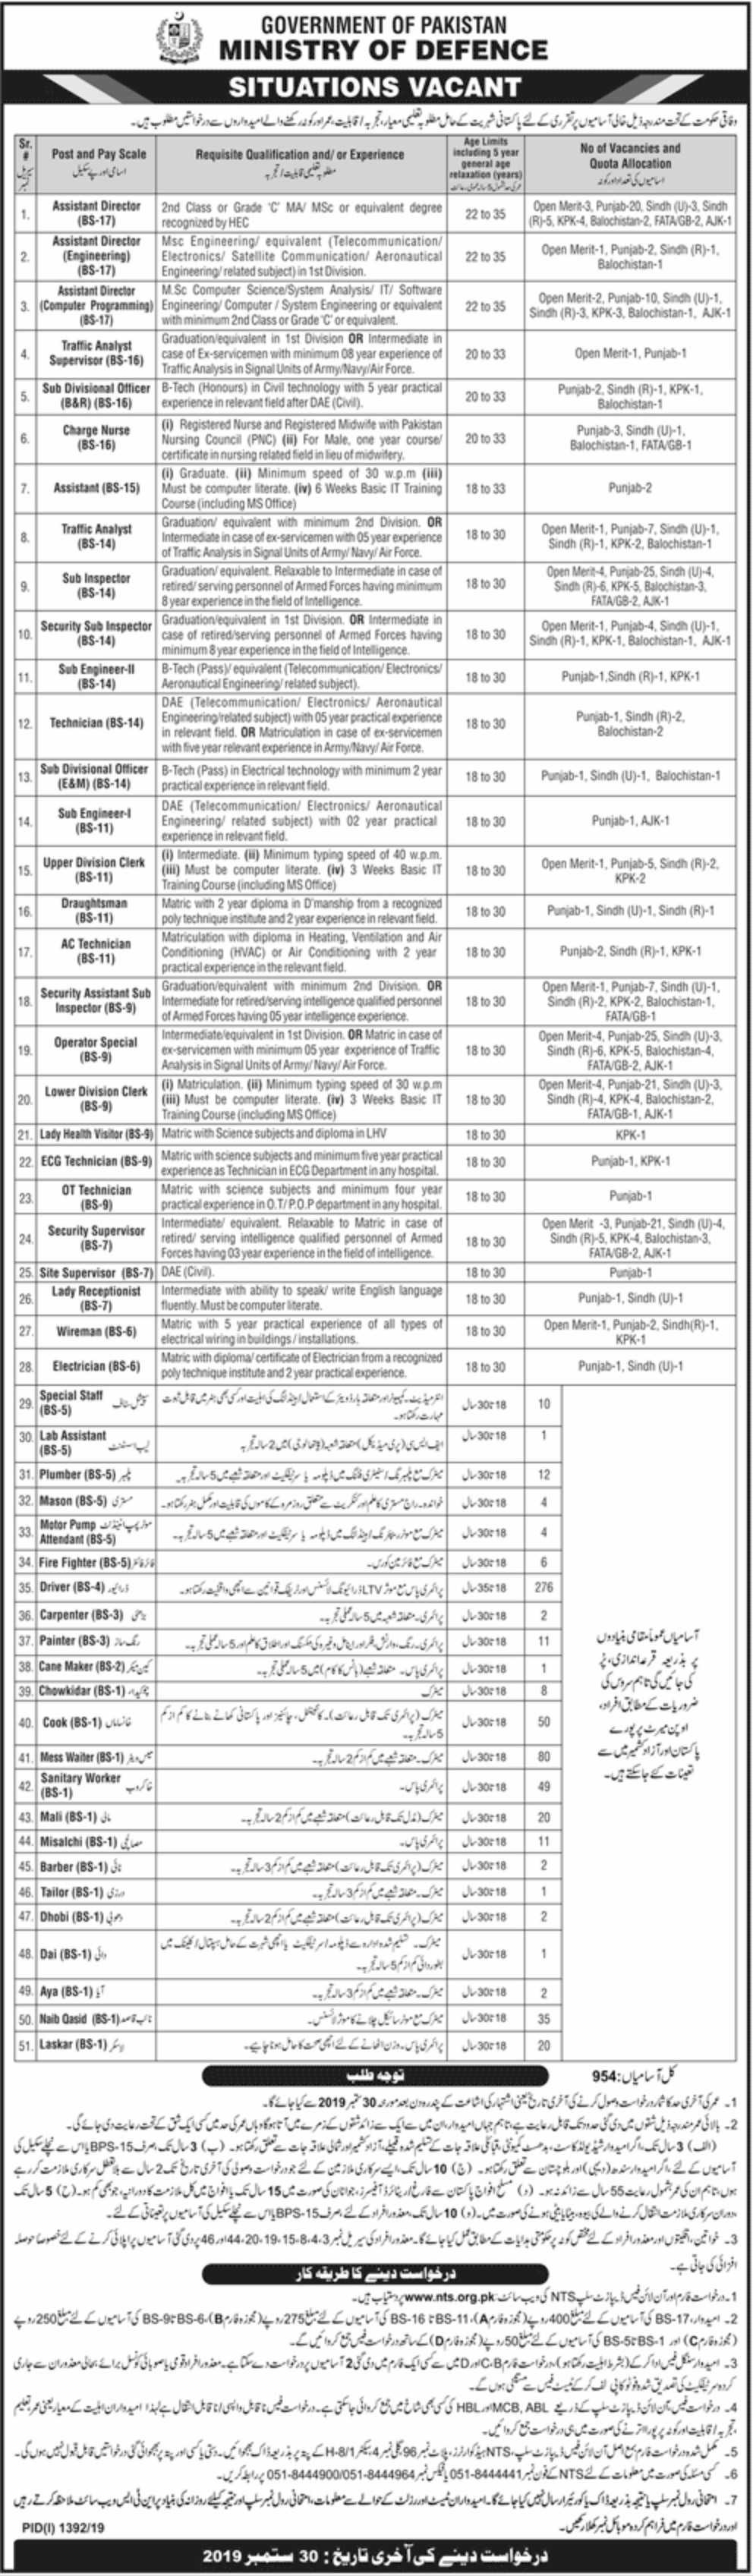 Ministry of Defence Pakistan Jobs 2019 NTS Application Form